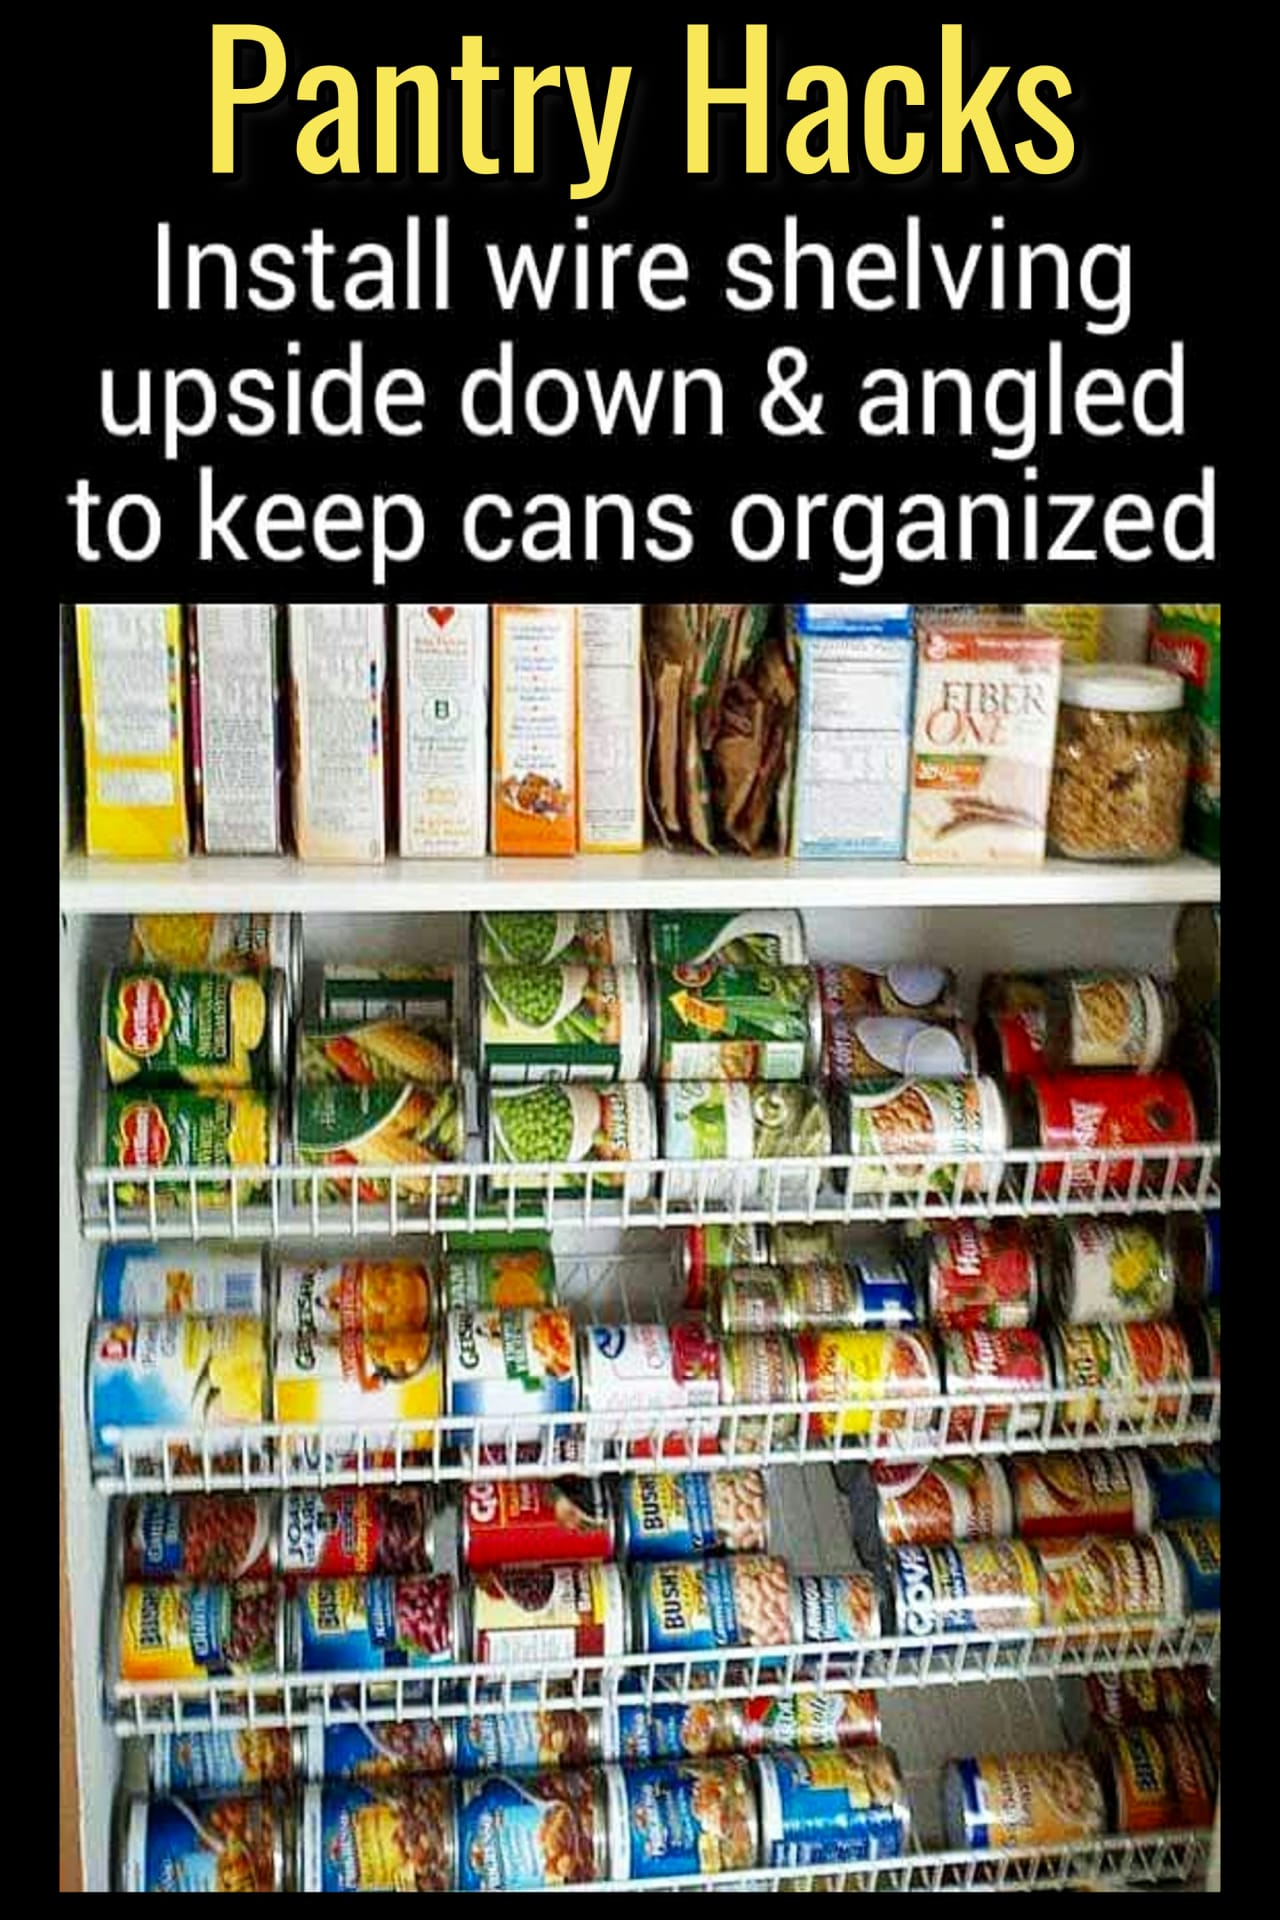 Pantry Organization Ideas - Pantry Shelves Organization Hack for Better Food Storage - how to organize canned goods in our pantry - Pantry Shelving Ideas - Easy DIY wire shelving storage ideas for an organized pantry